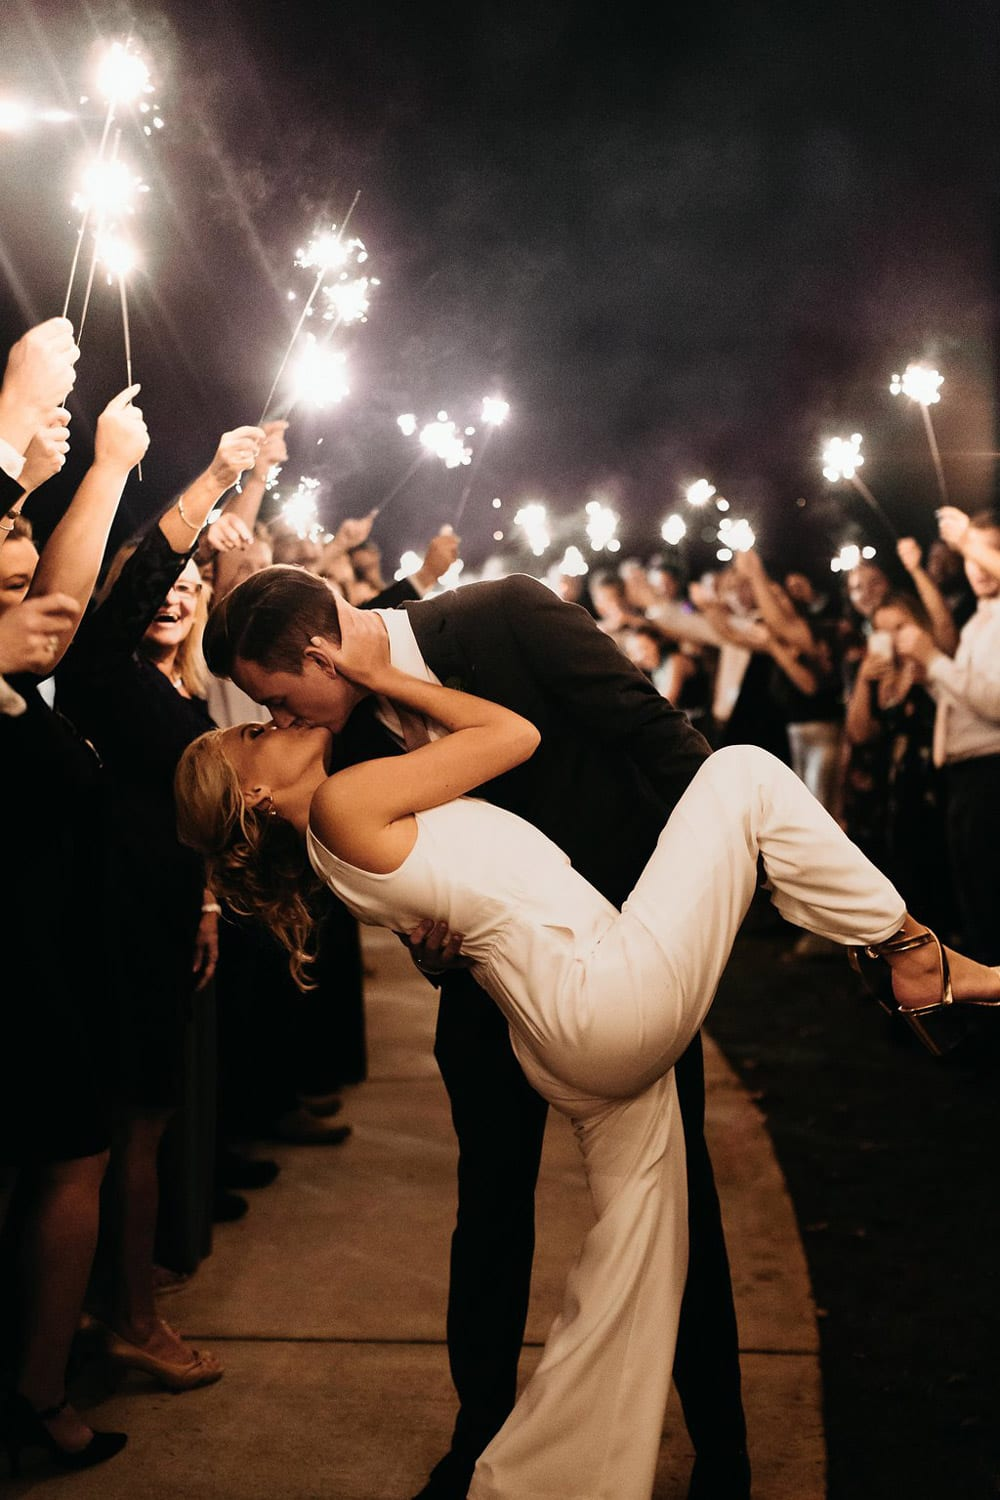 Groom kisses bride during send-off